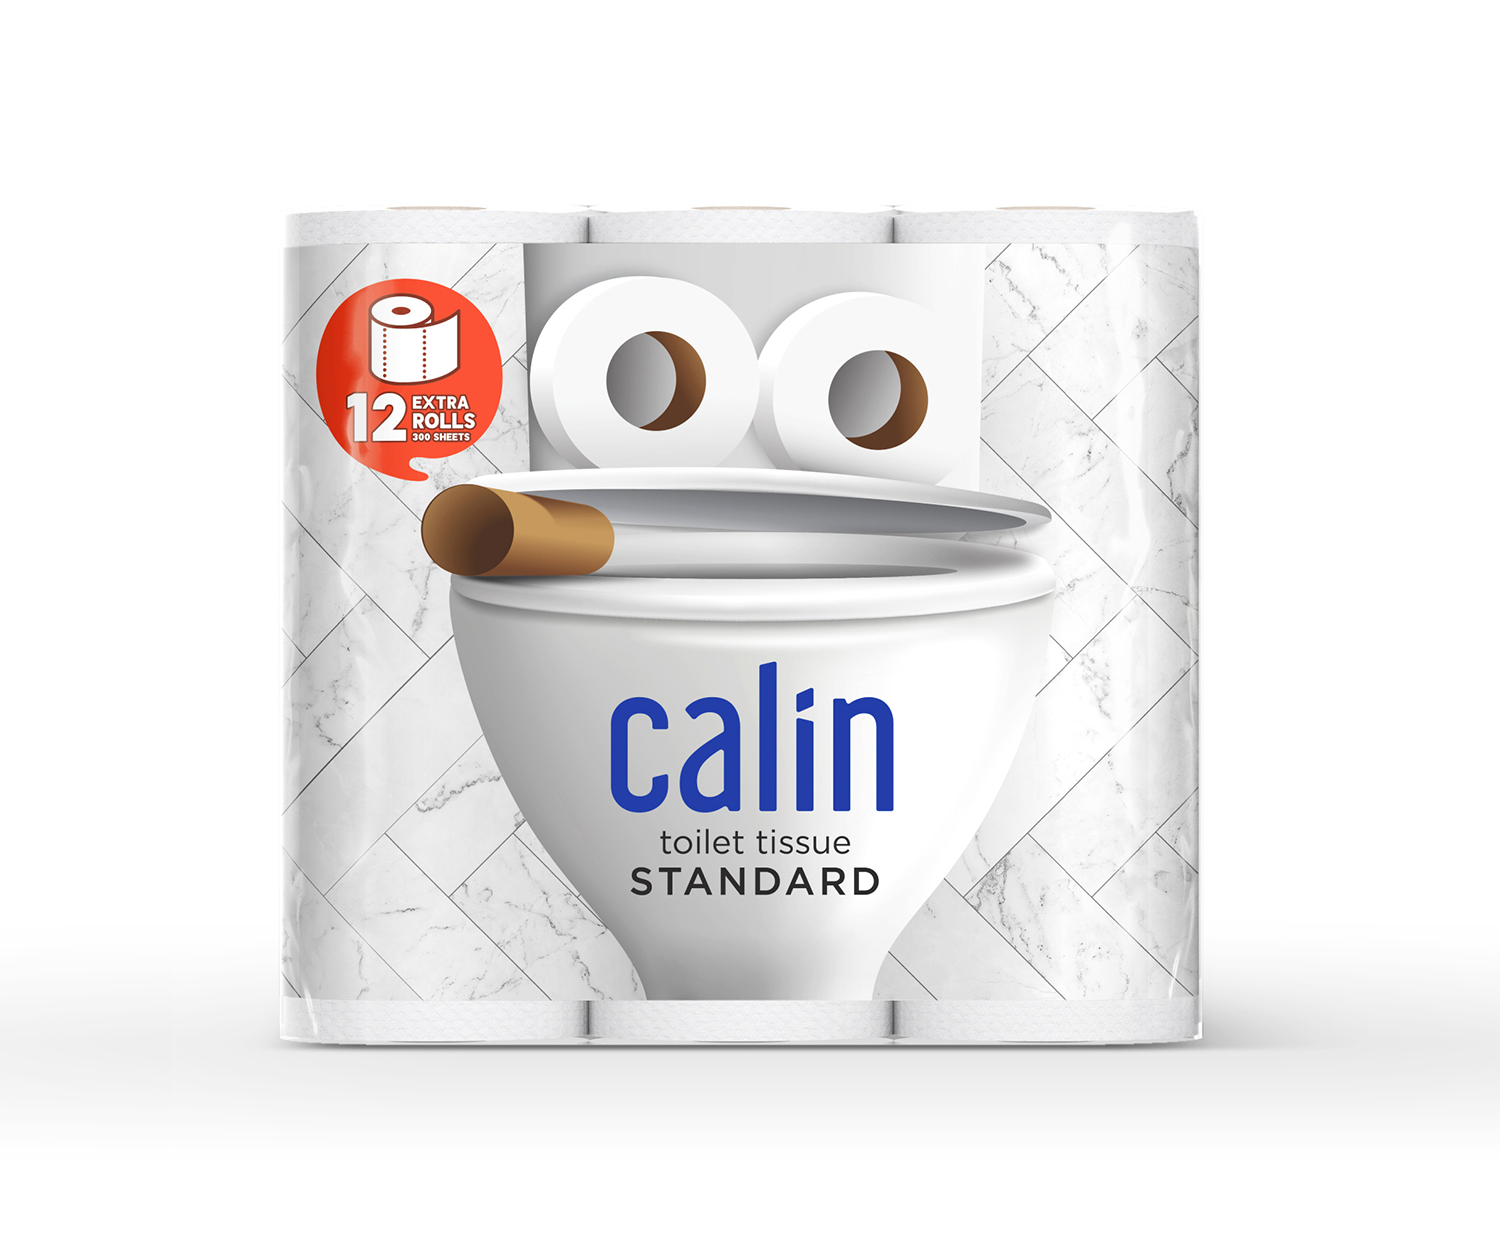 Prompt Design Creates Concept Packaging Design for Calin Toilet Tissue